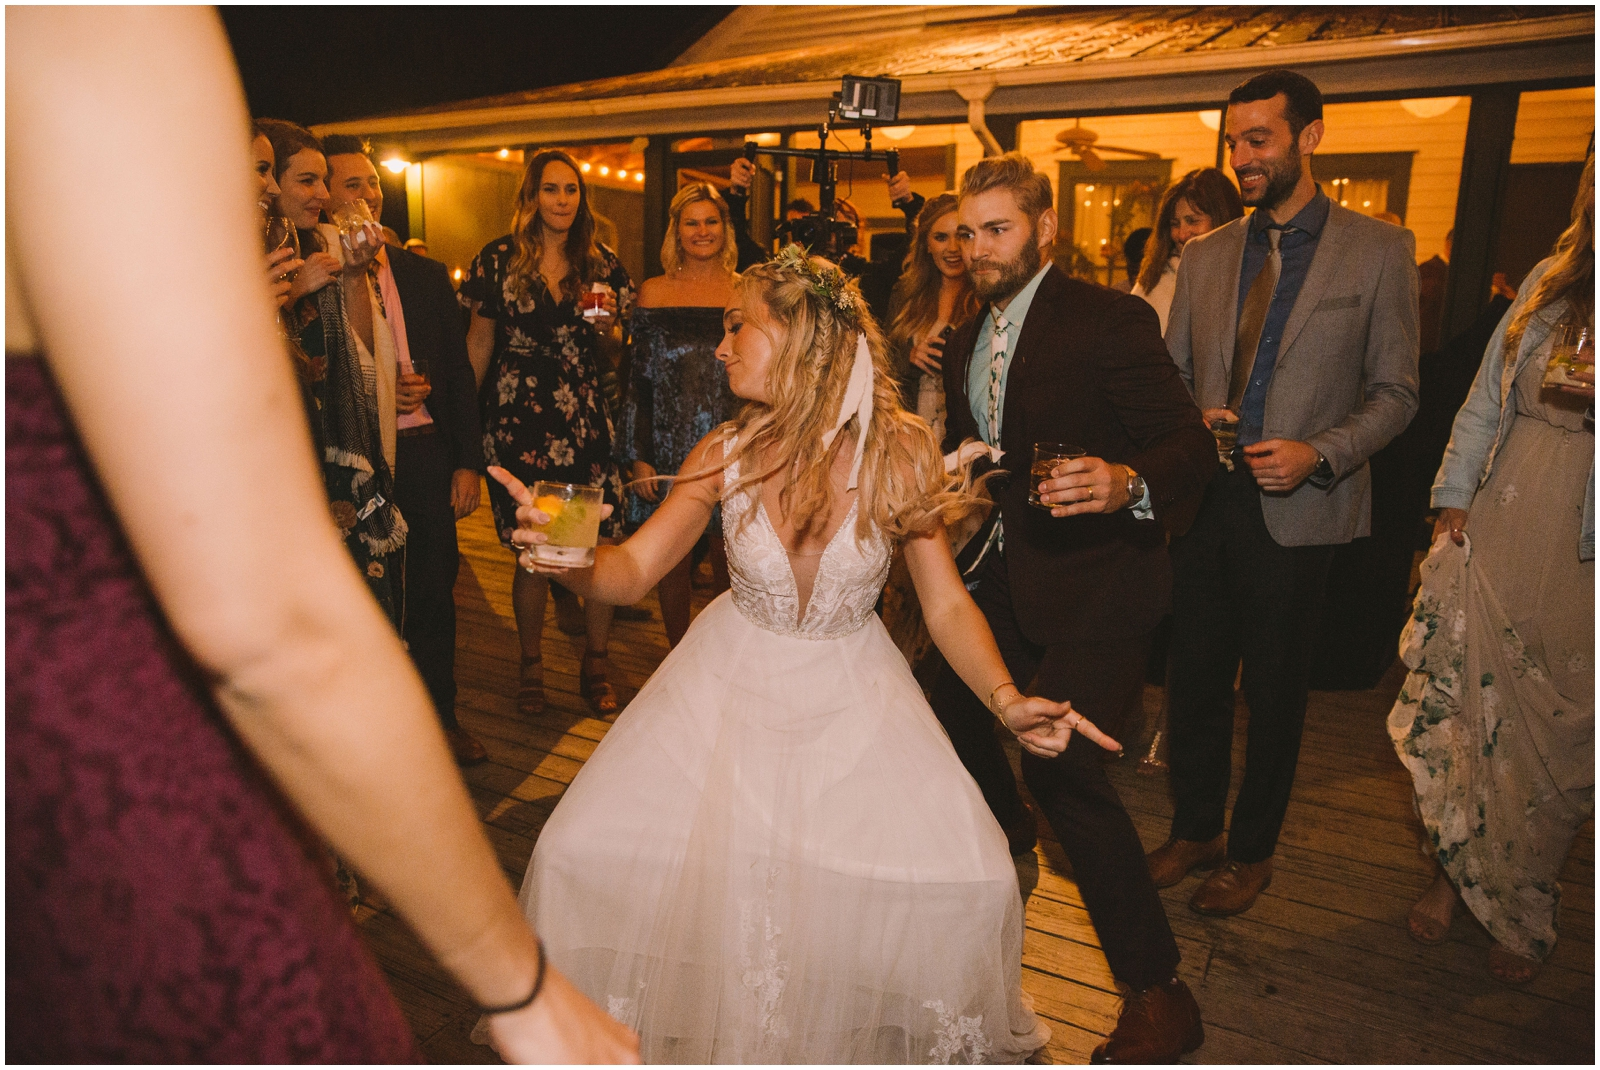 Wedding guests dancing at The Glen Venue